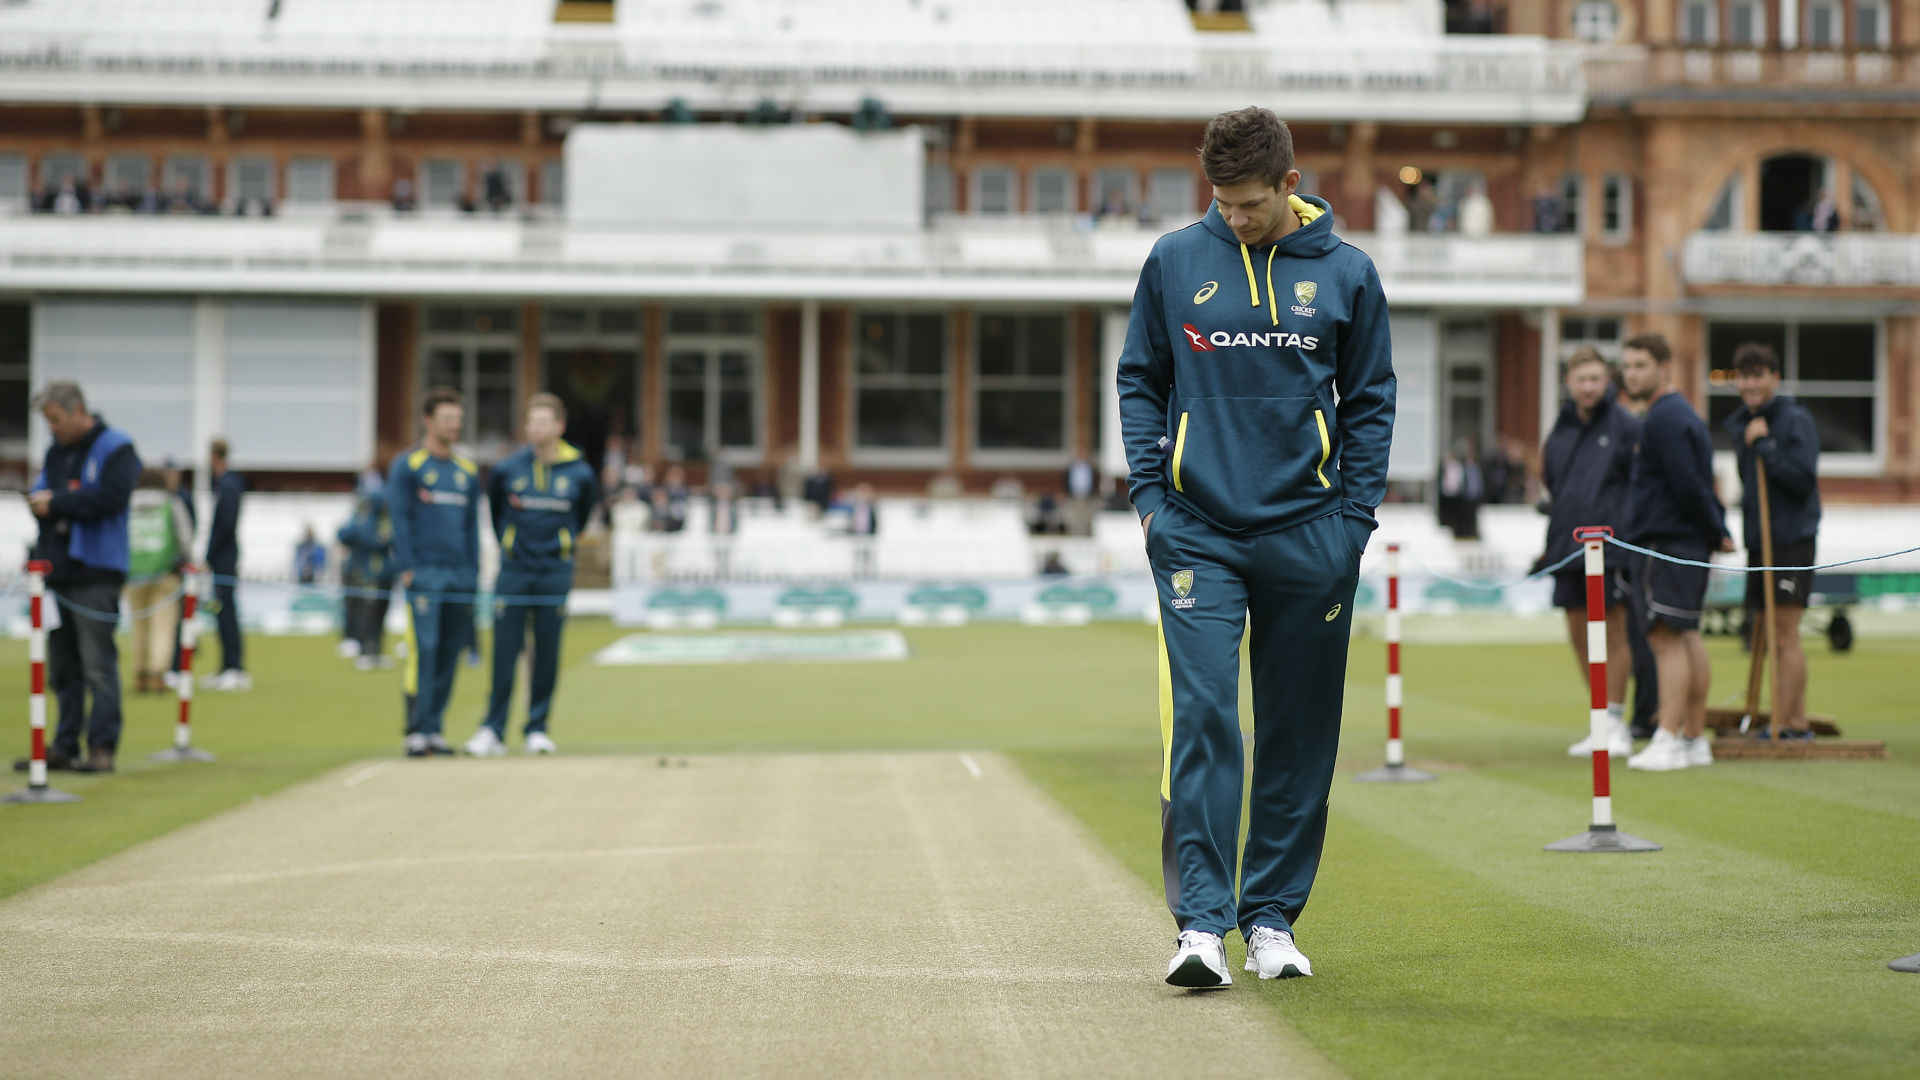 Ashes 2019: Australia win the toss and put England in as Archer debuts